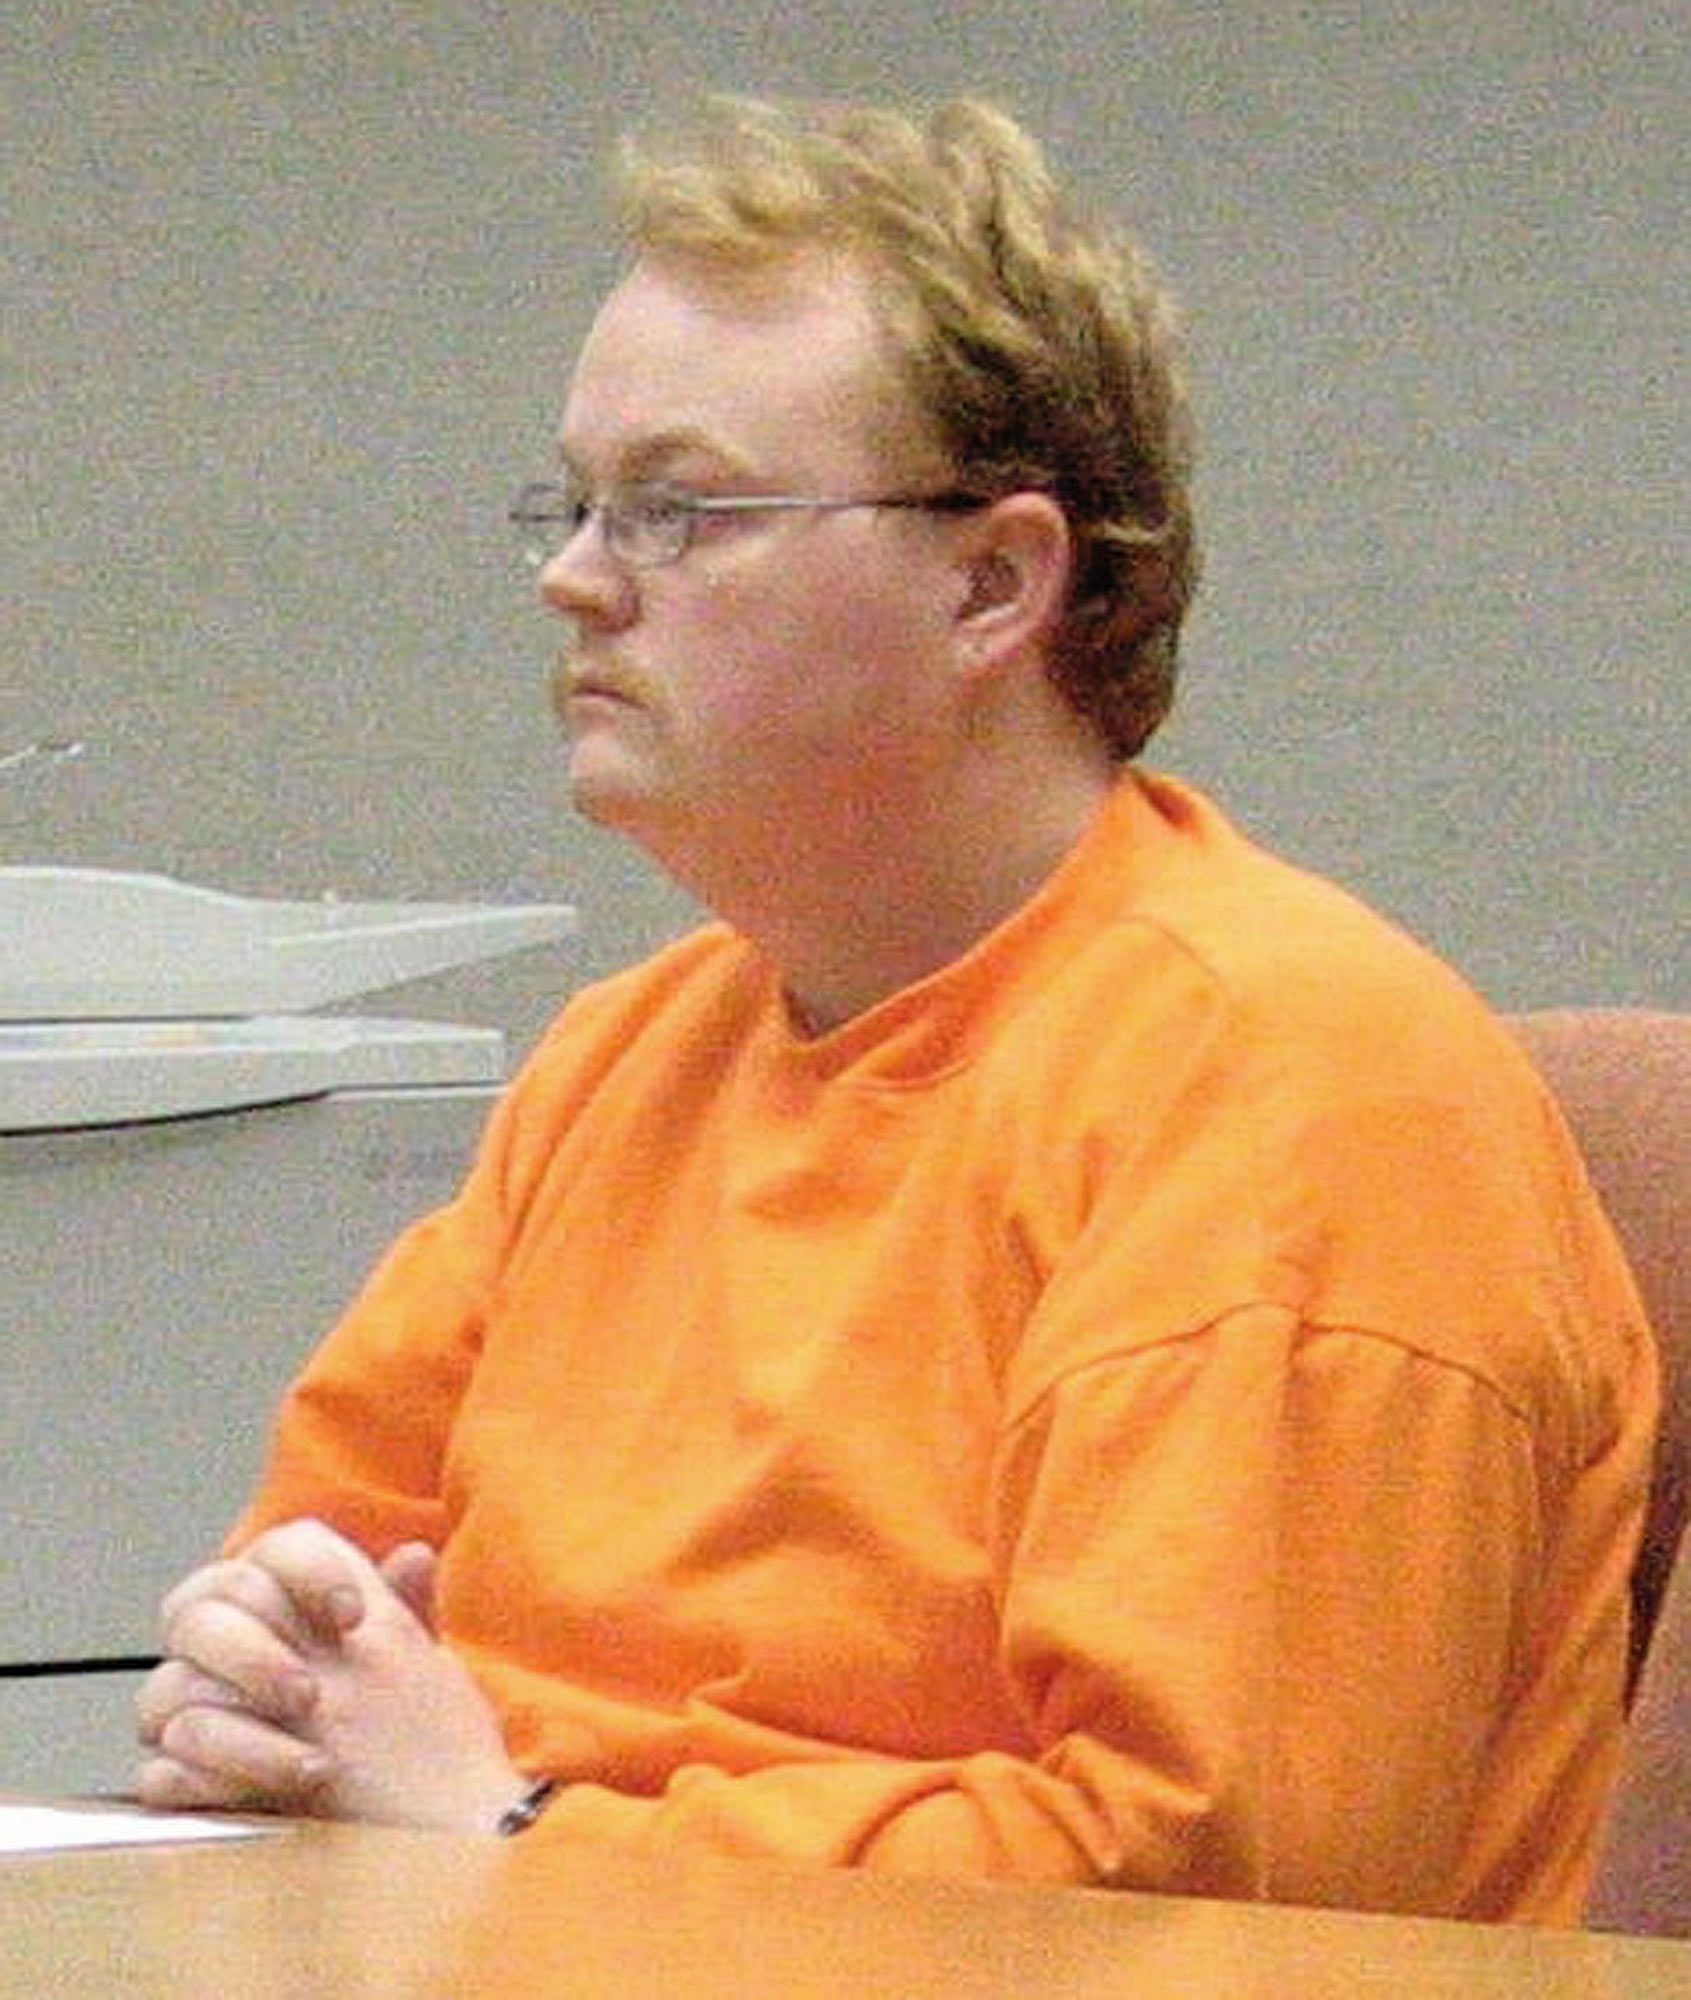 Jason Arrant, 24, listens as Magistrate Kay Clark reads a complaint charging him with first-degree murder in the Nov. 14, 2004, death of Lauri Waterman, 48, on Prince of Wales Island in Southeast Alaska, Saturday, Nov. 20, 2004, in District Court in Craig, Alaska. (AP Photo/Ketchikan Daily News, Tom Miller)